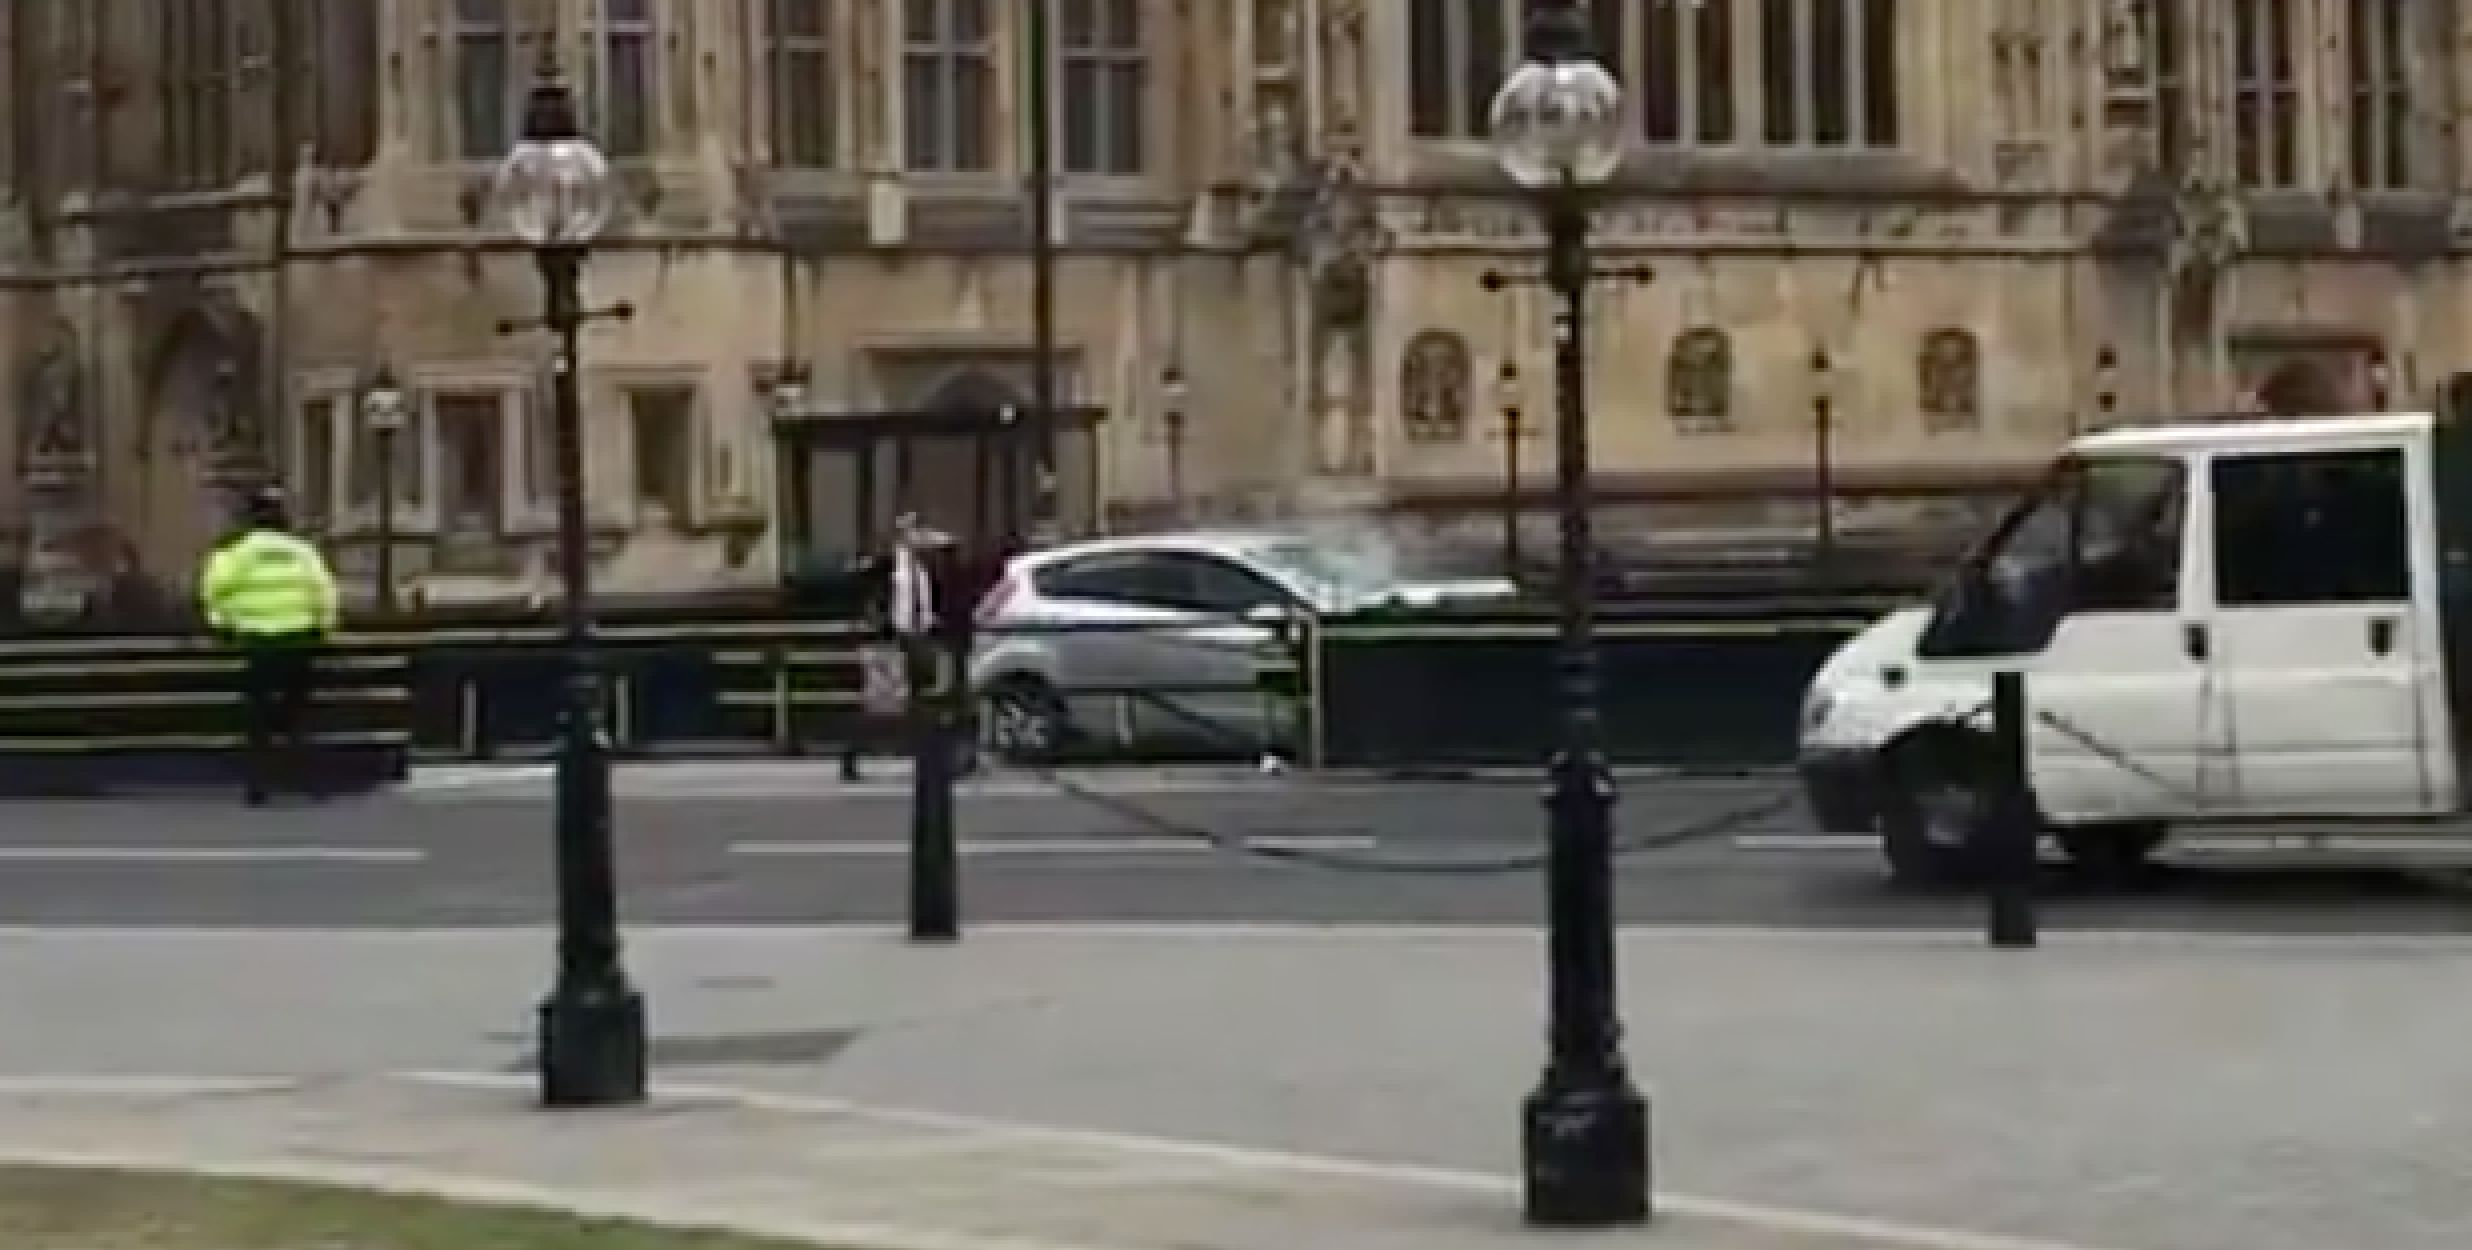 Car crashes into security barriers outside Parliament: Armed police surround driver